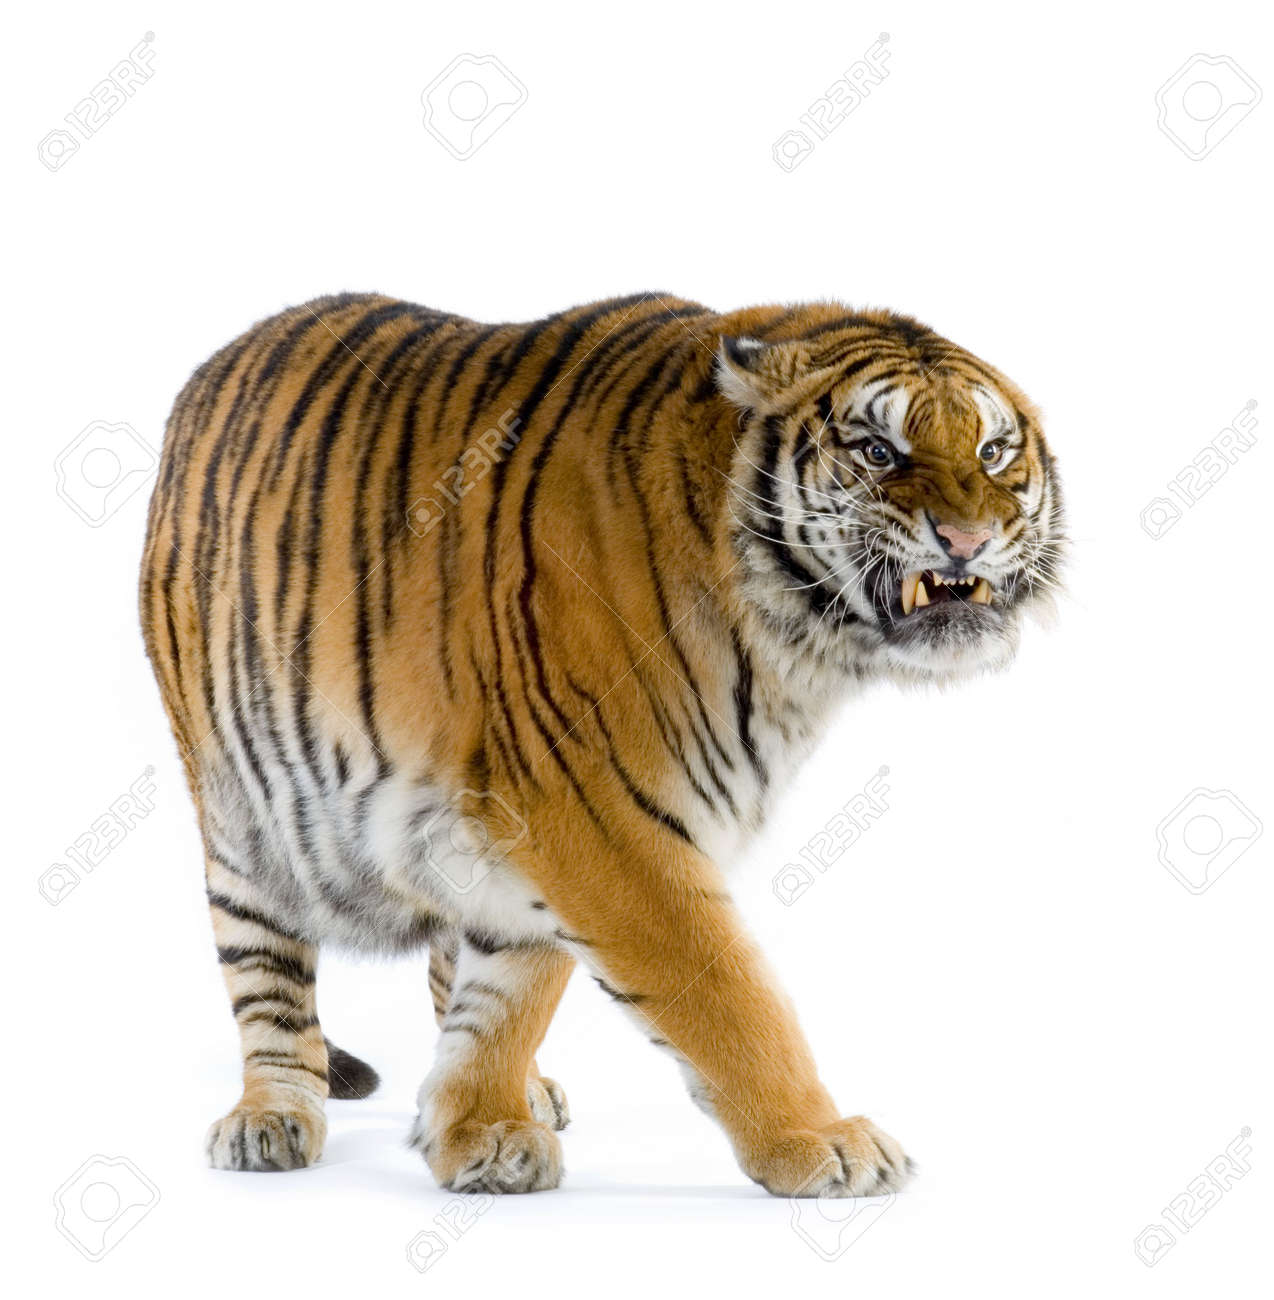 roaring tiger stock photos royalty free roaring tiger images and